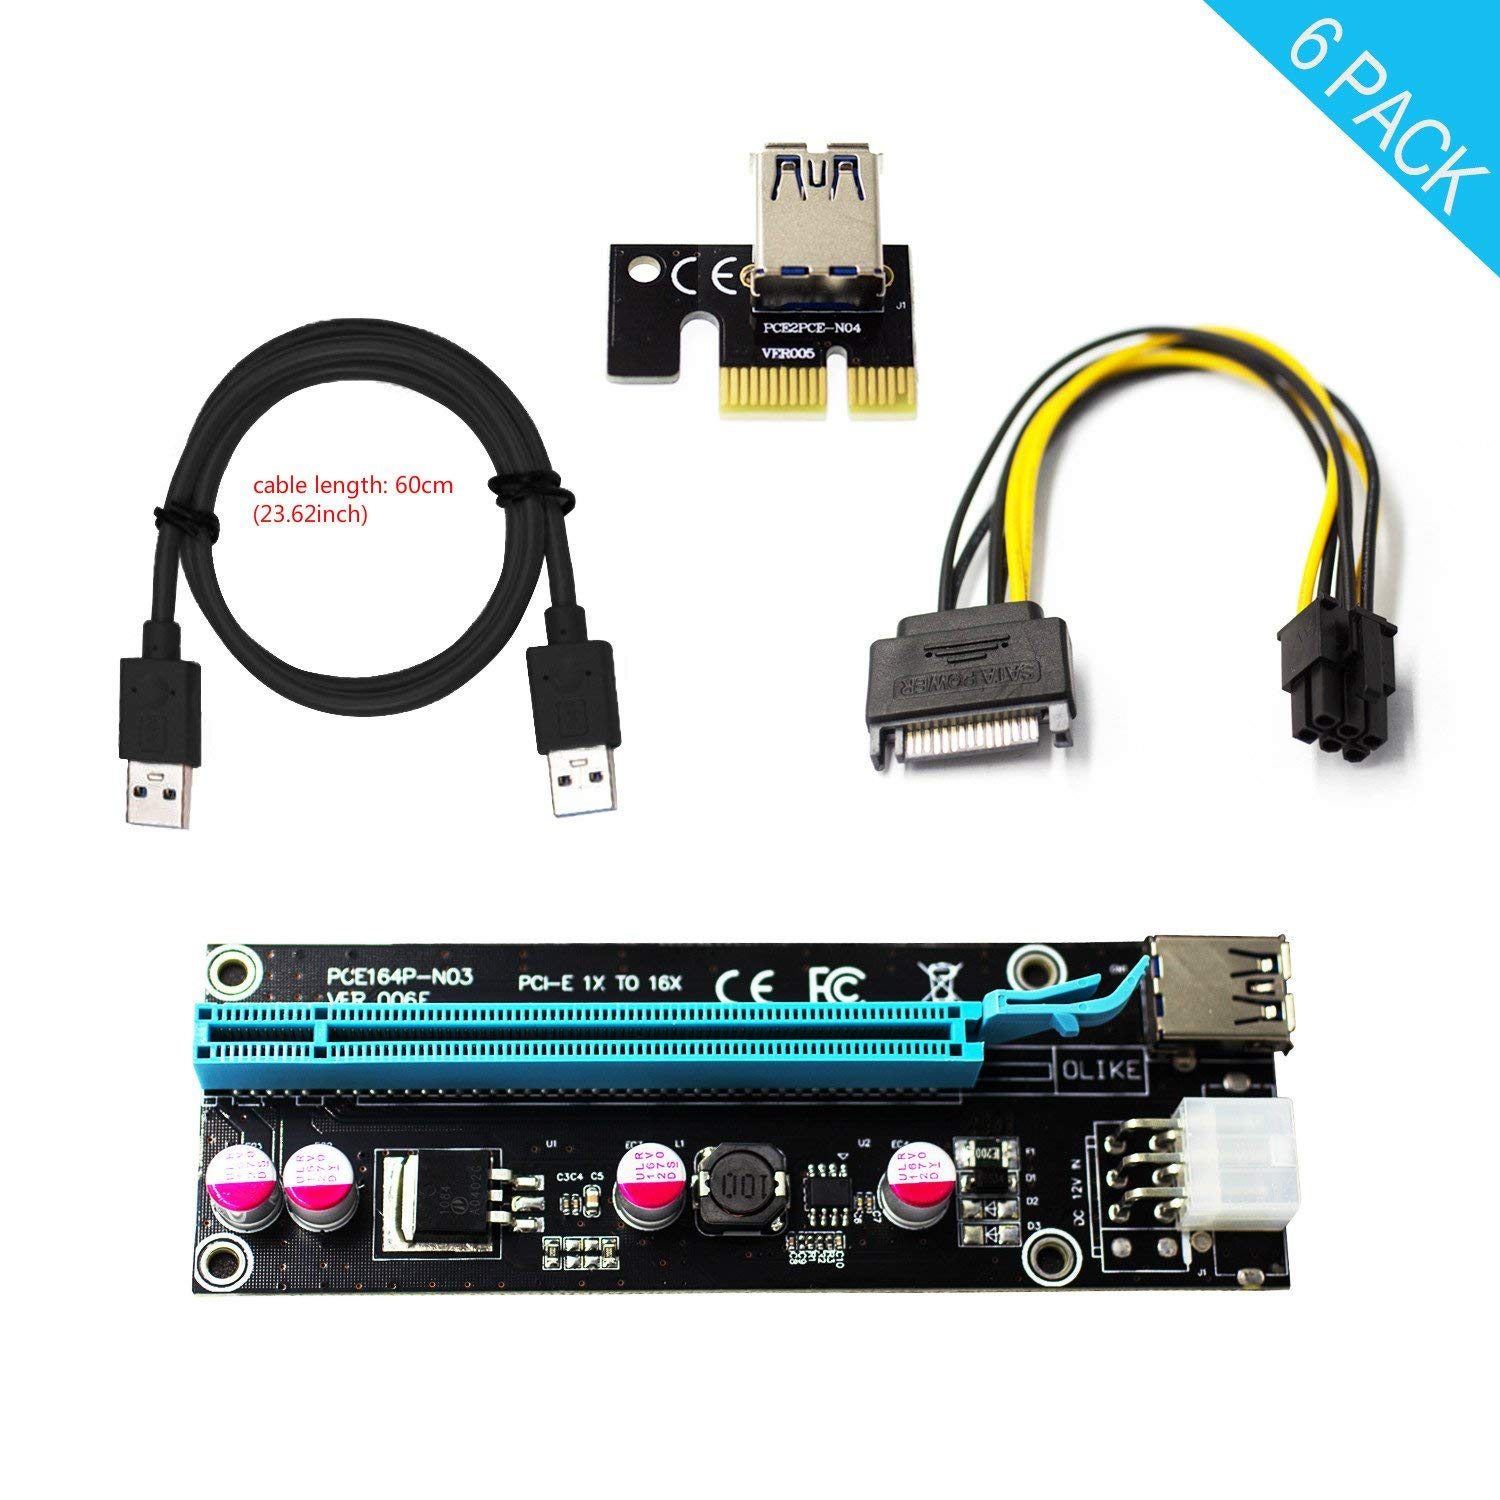 HotTopStar PCI-E 16x to 1x Powered Riser Adapter Card USB 3.0 Extension Cable & MOLEX to SATA Power Cable w/ 60cm GPU Riser Adapter Ethereum Mining ETH, Miner Power Supply (6pack)